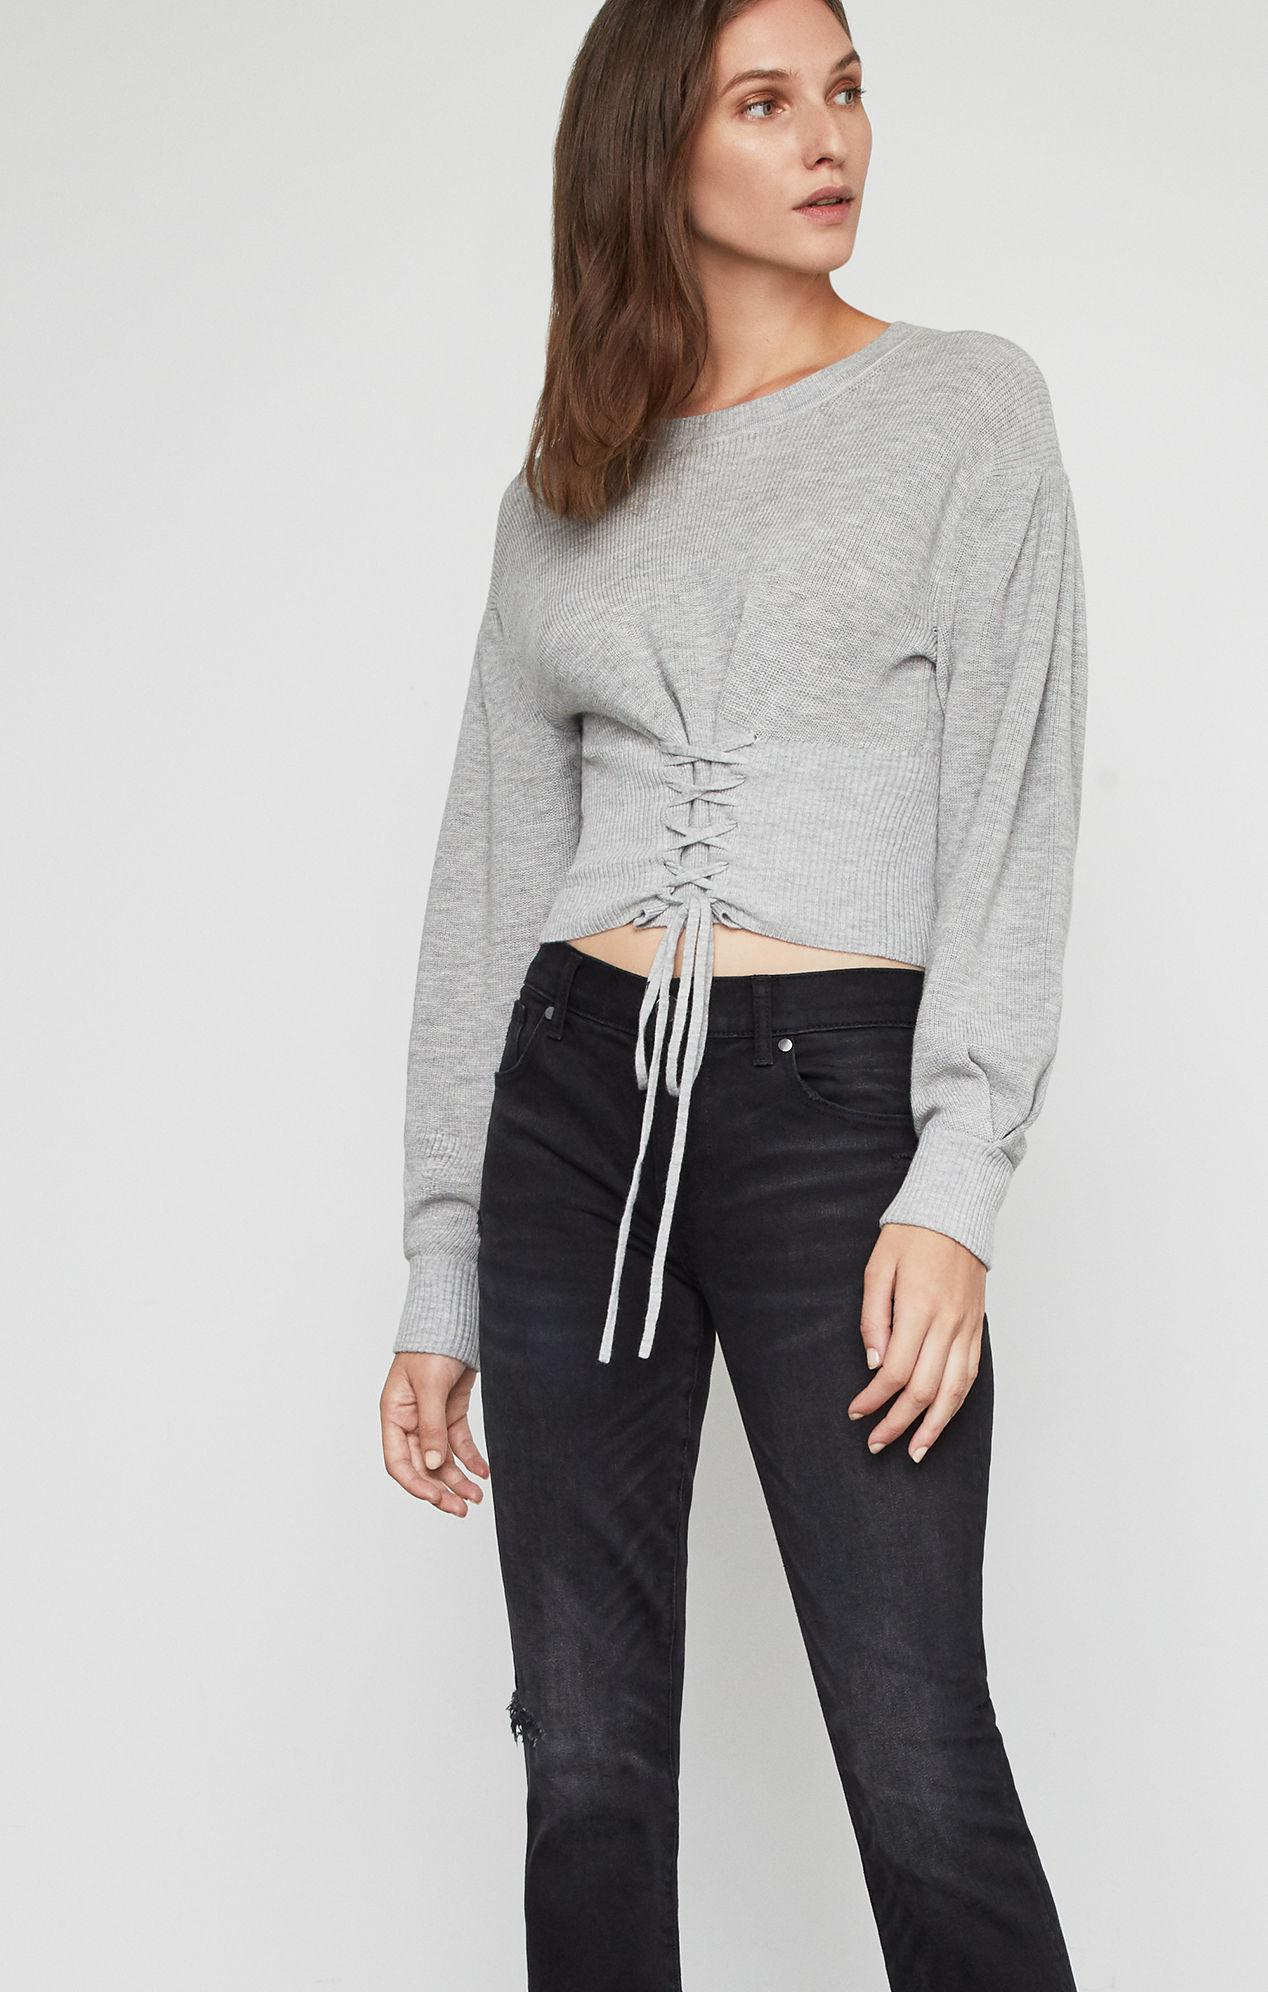 BCBGMAXAZRIA - Gray Bcbg Lace Up Crop Sweater - Lyst. View fullscreen b0458bcbd